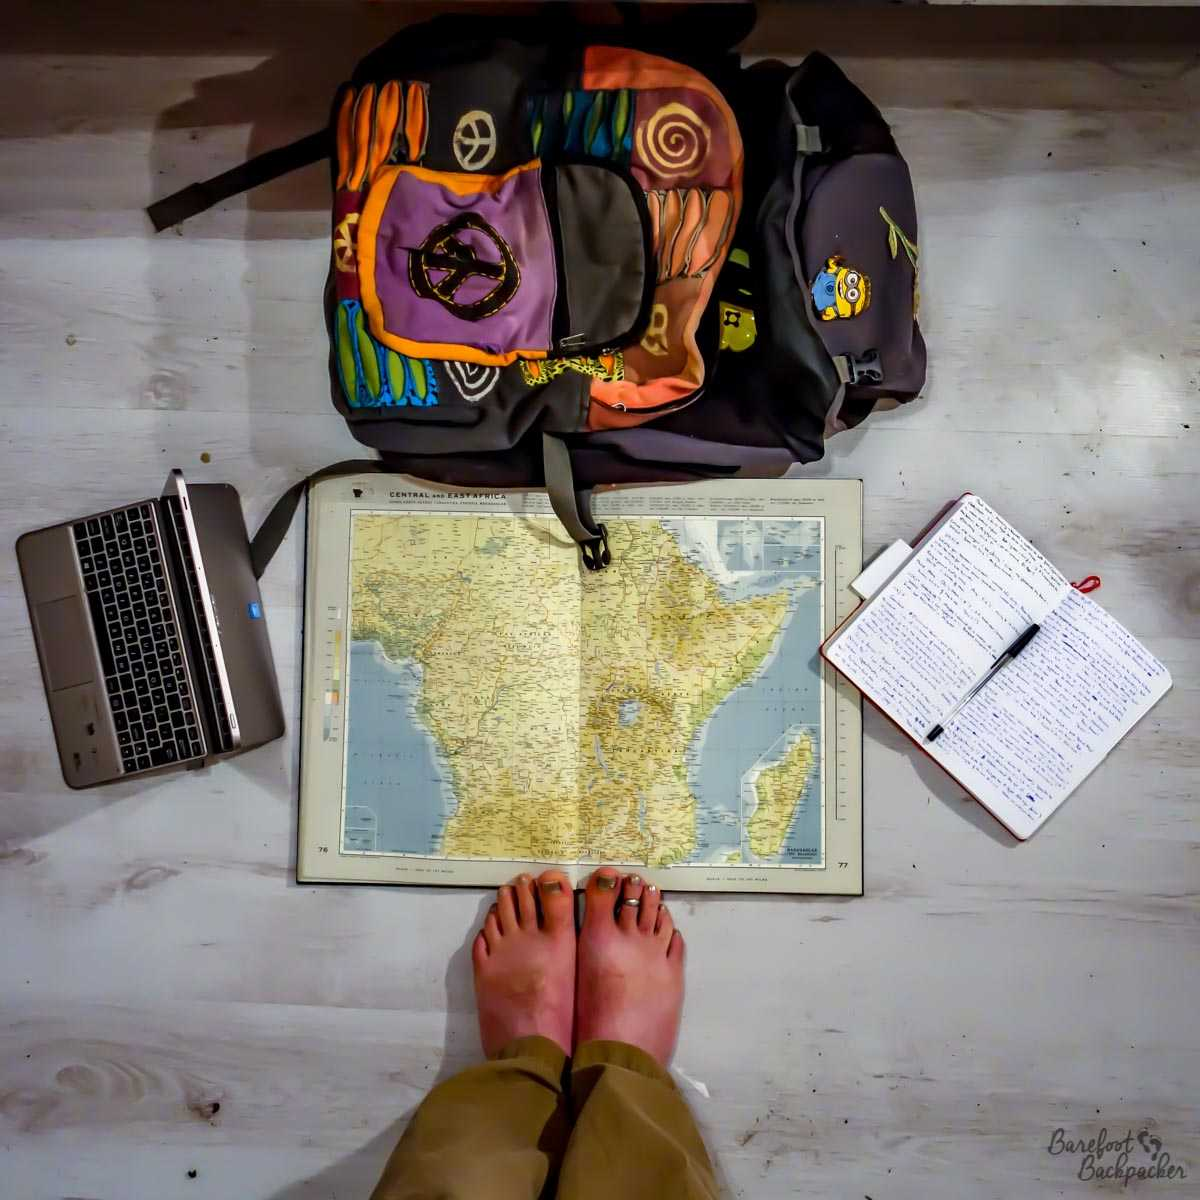 Travel blogger, with feet, map, backpack, notepad, and tablet. Everything the travel blogger needs to survive!